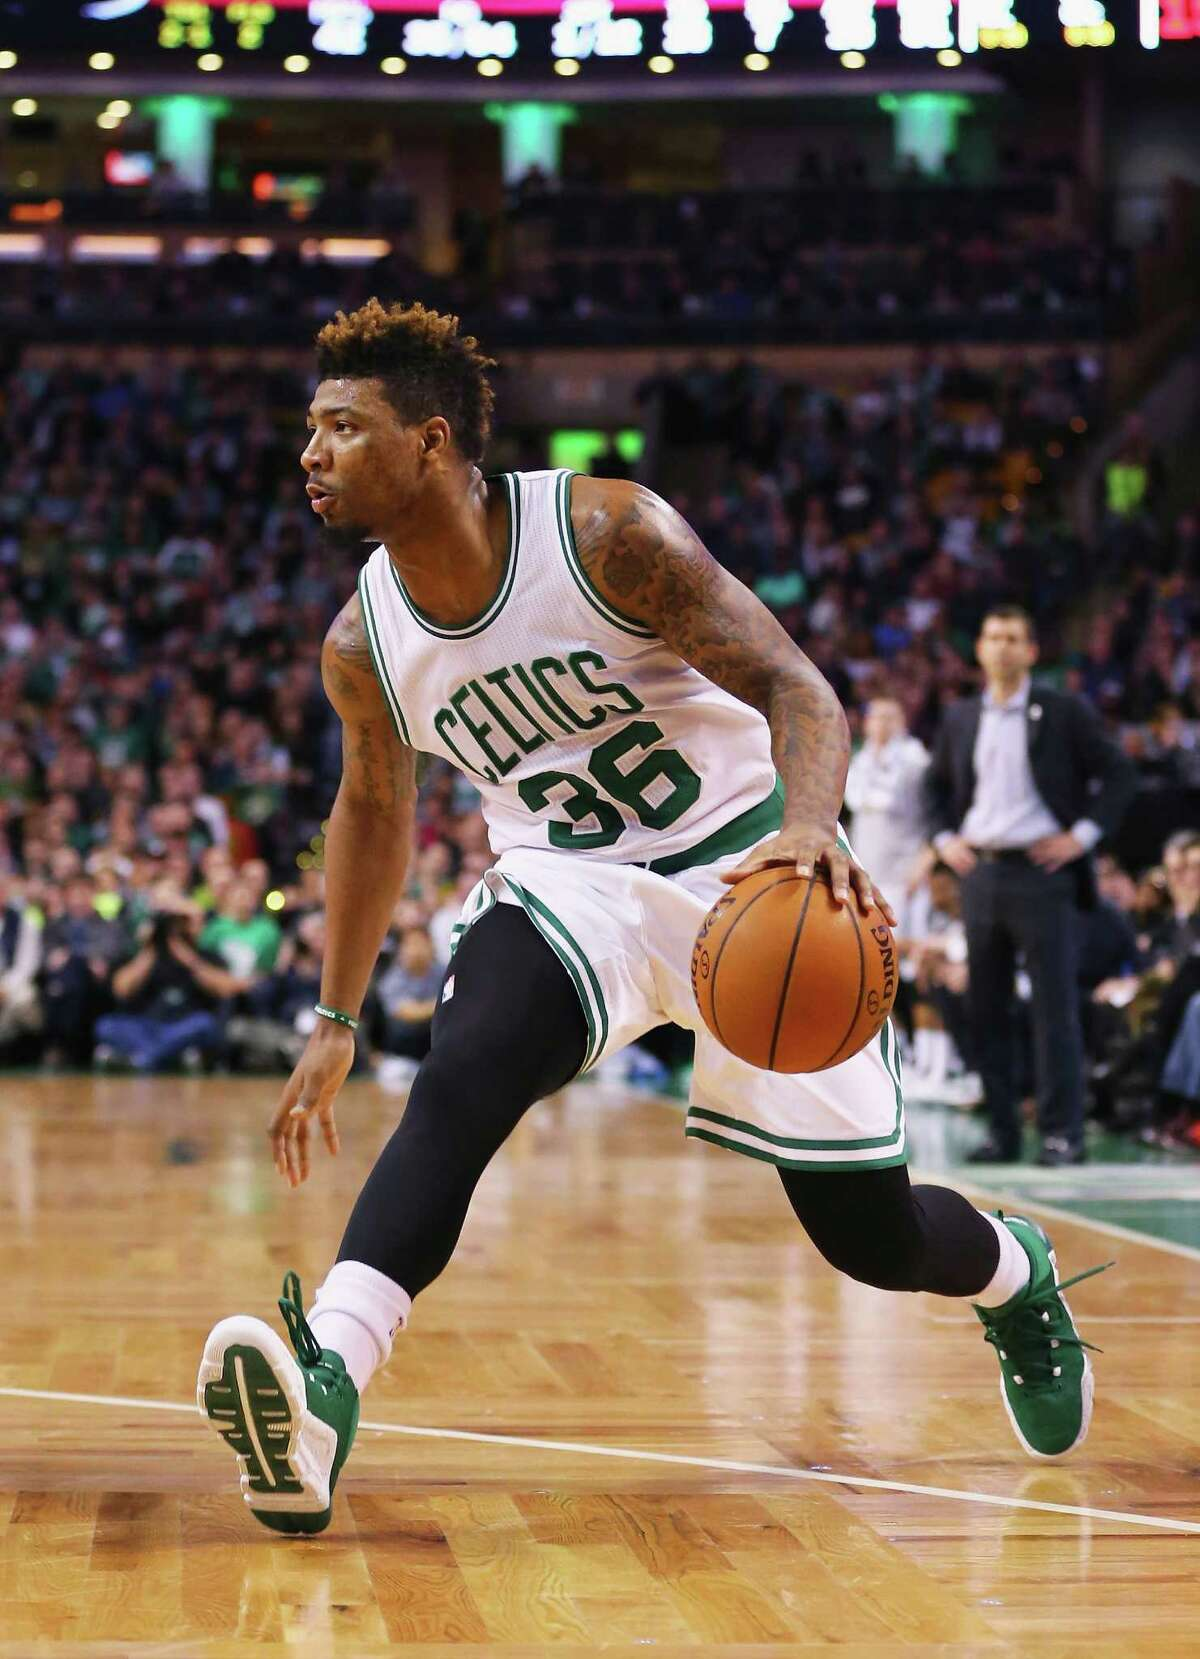 BOSTON, MA - FEBRUARY 27: Marcus Smart #36 of the Boston Celtics dribbles against the Miami Heat during the fourth quarter at TD Garden on February 27, 2016 in Boston, Massachusetts. The Celtics defeat the Heat 101-89. (Photo by Maddie Meyer/Getty Images) ORG XMIT: 575730973